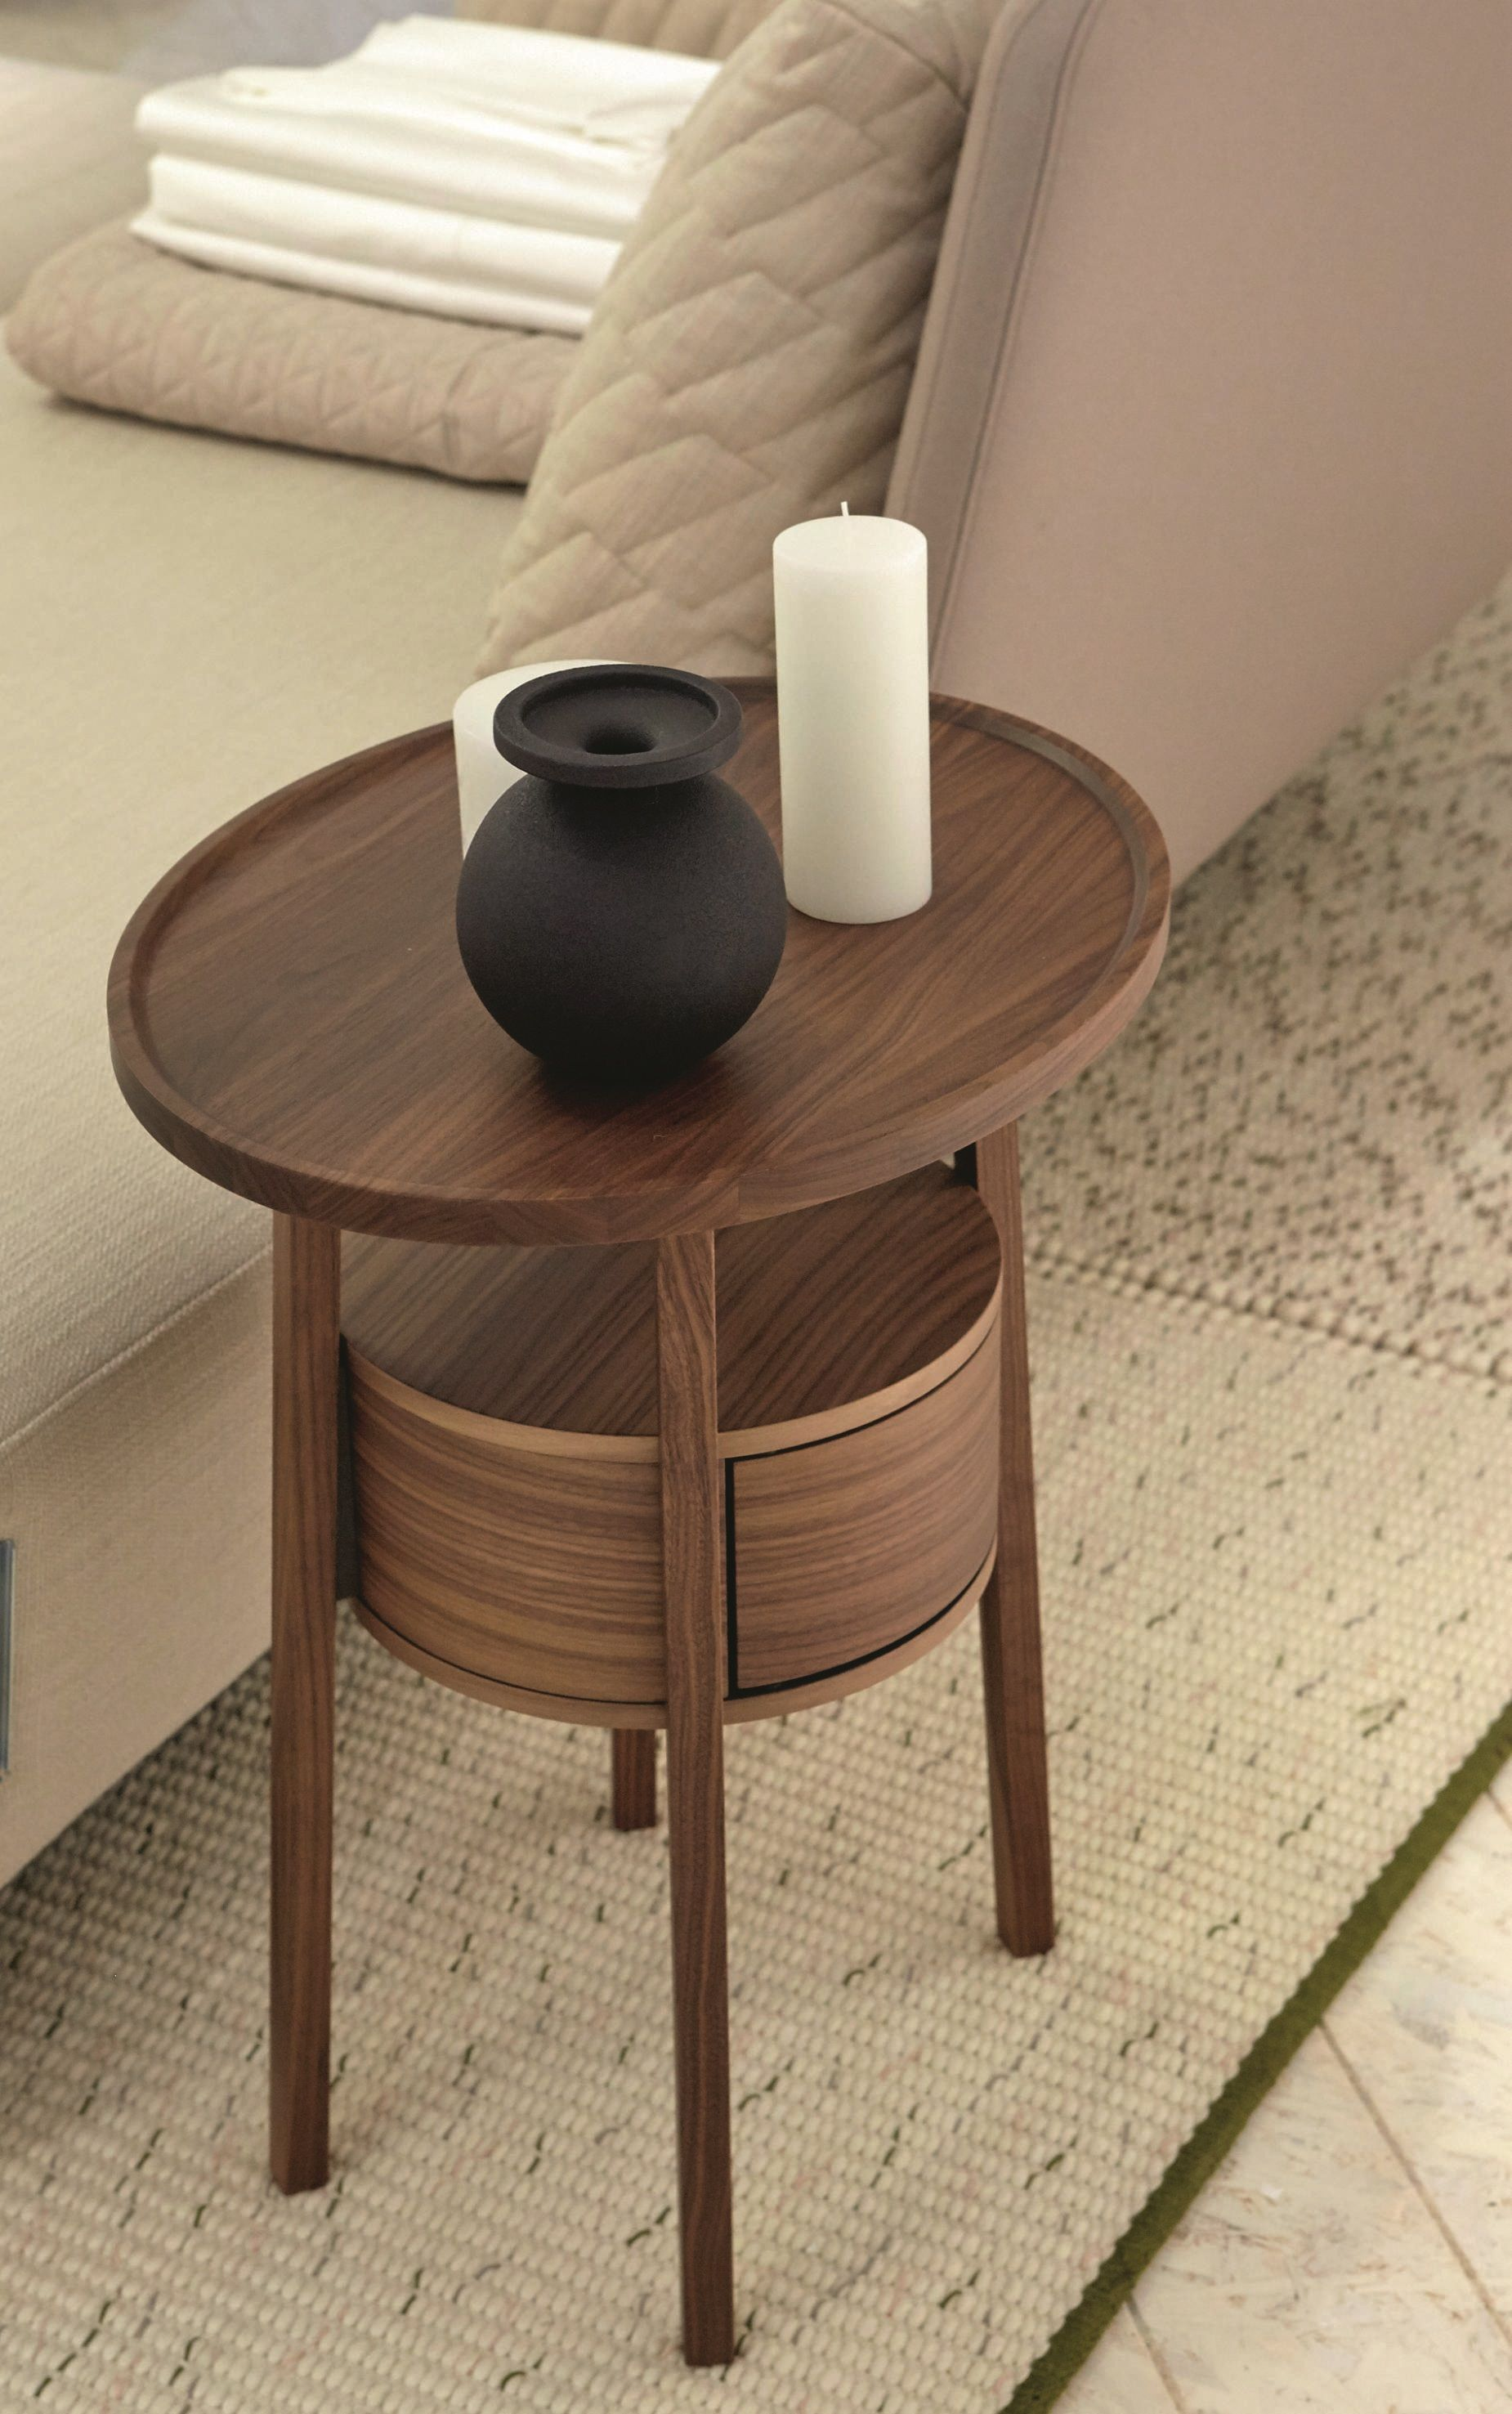 Ligne Roset Riga Episode By Marie Christine Dorner Is An Occasional Table With A